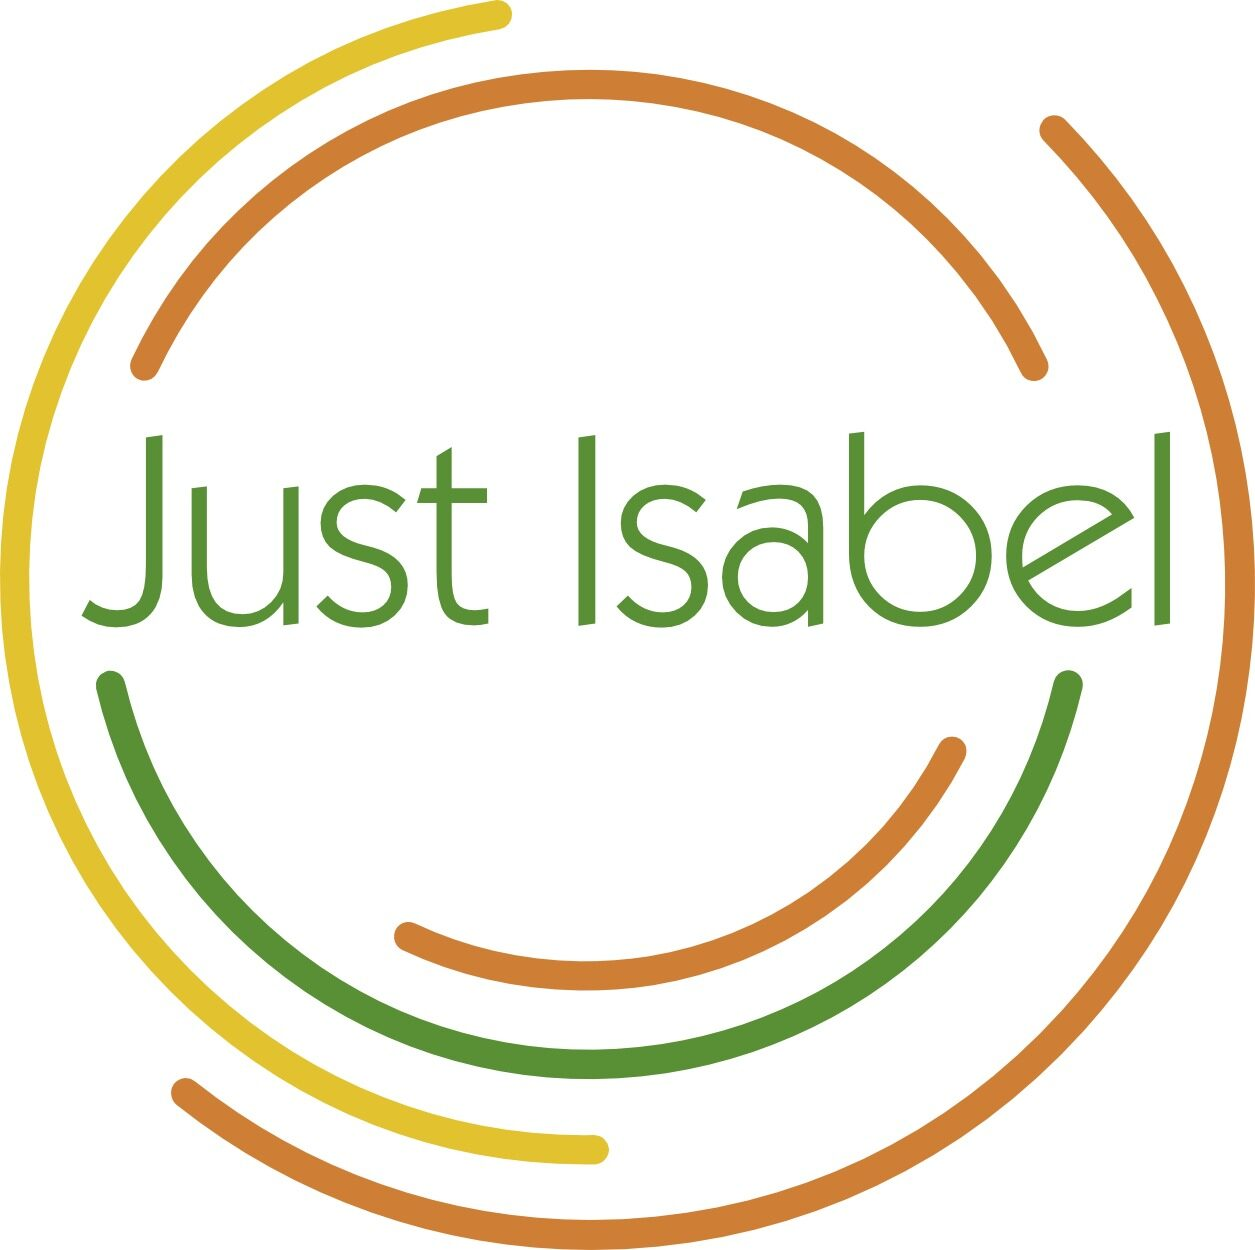 Just Isabel